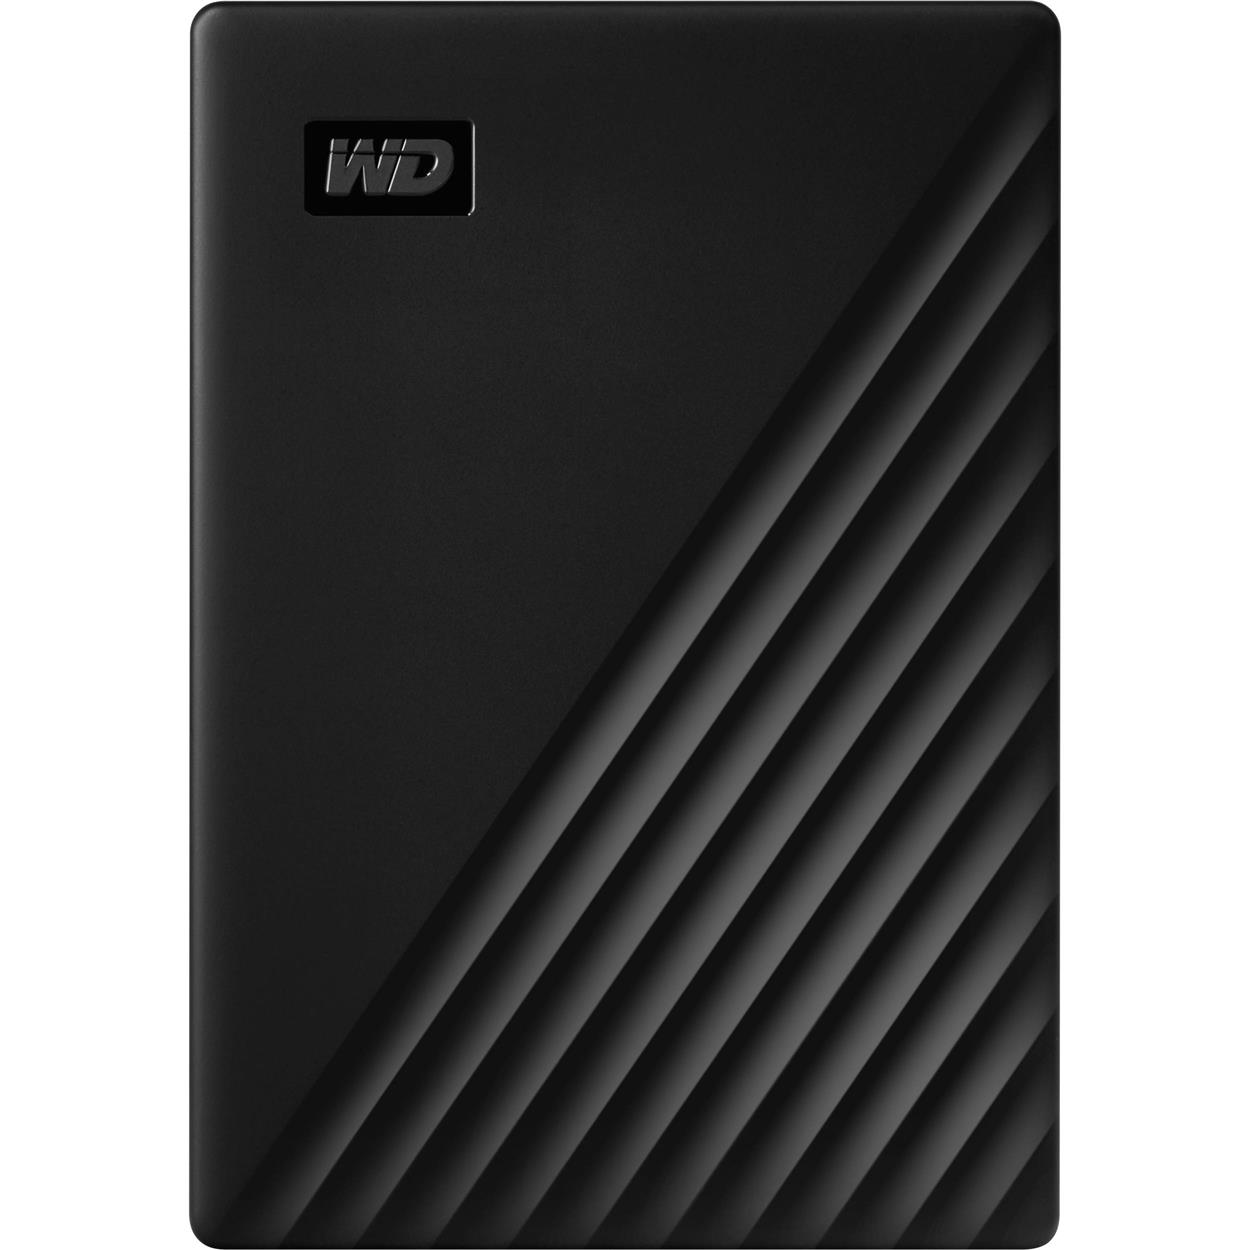 WD My Passport 2.5 External Hard Drive USB 3.0 1TB